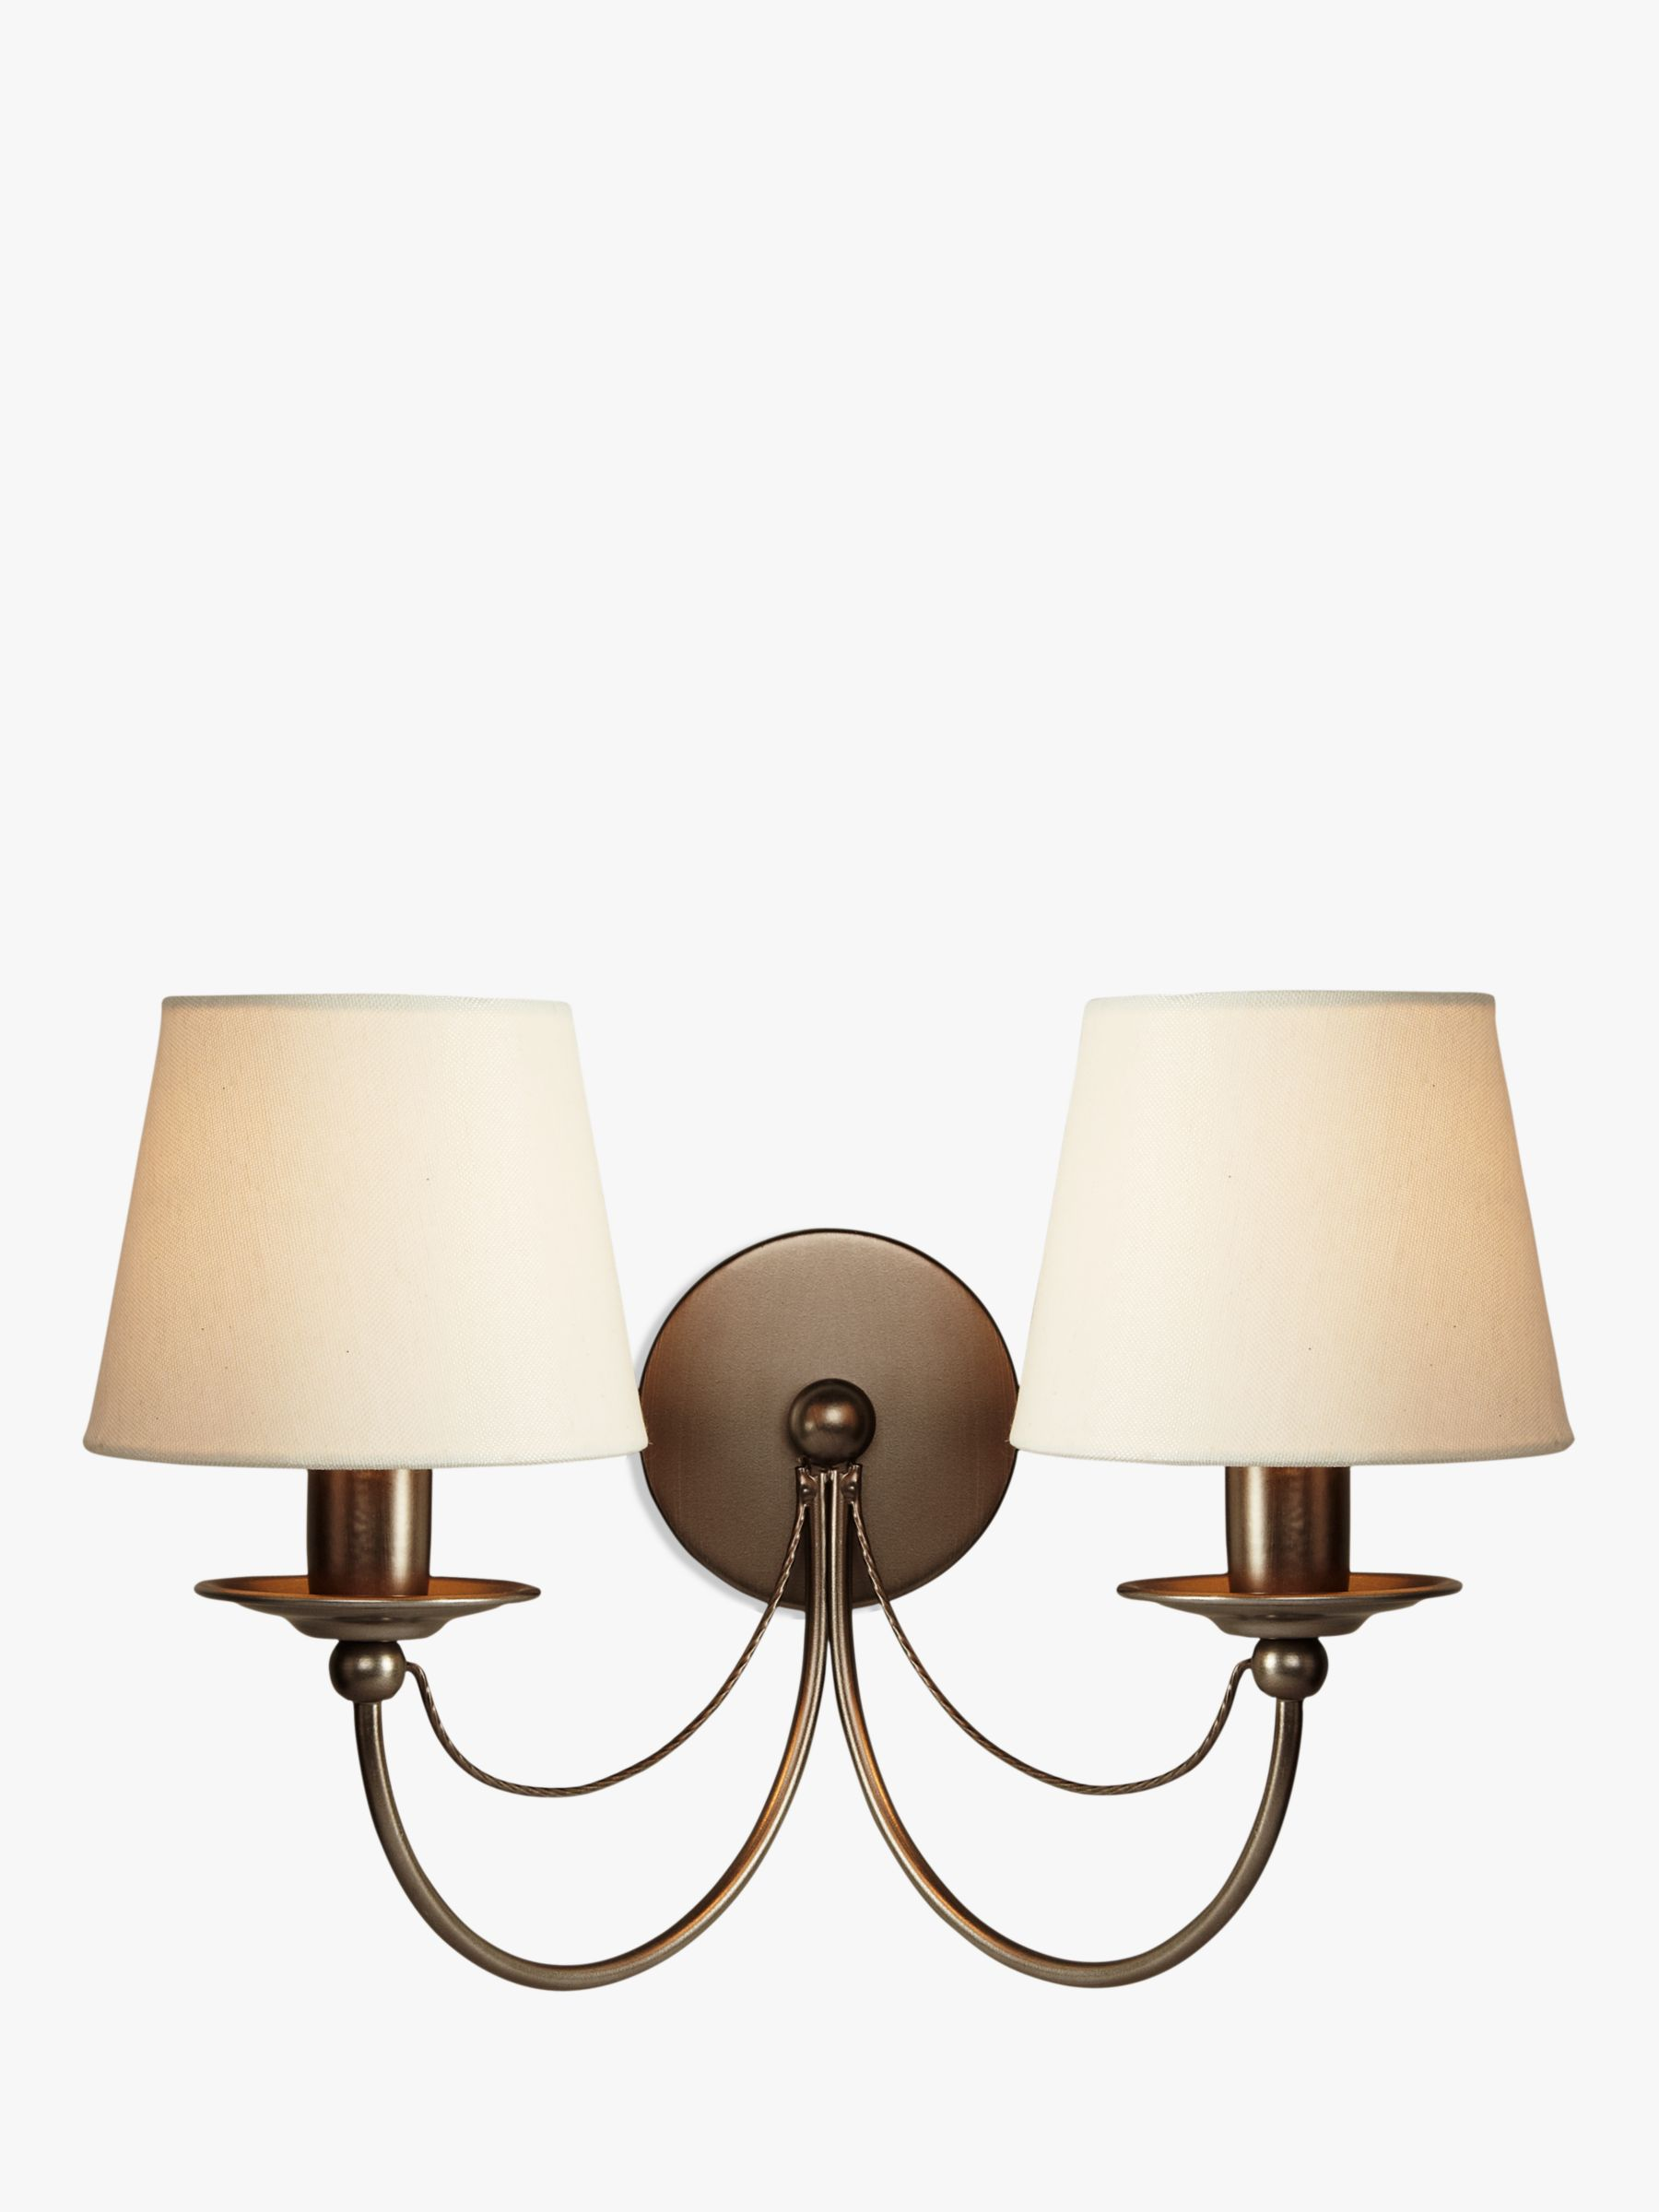 John Lewis Wall Lamp Shades : Buy John Lewis Mariana Fabric Shade Wall Light, 2 Arm John Lewis